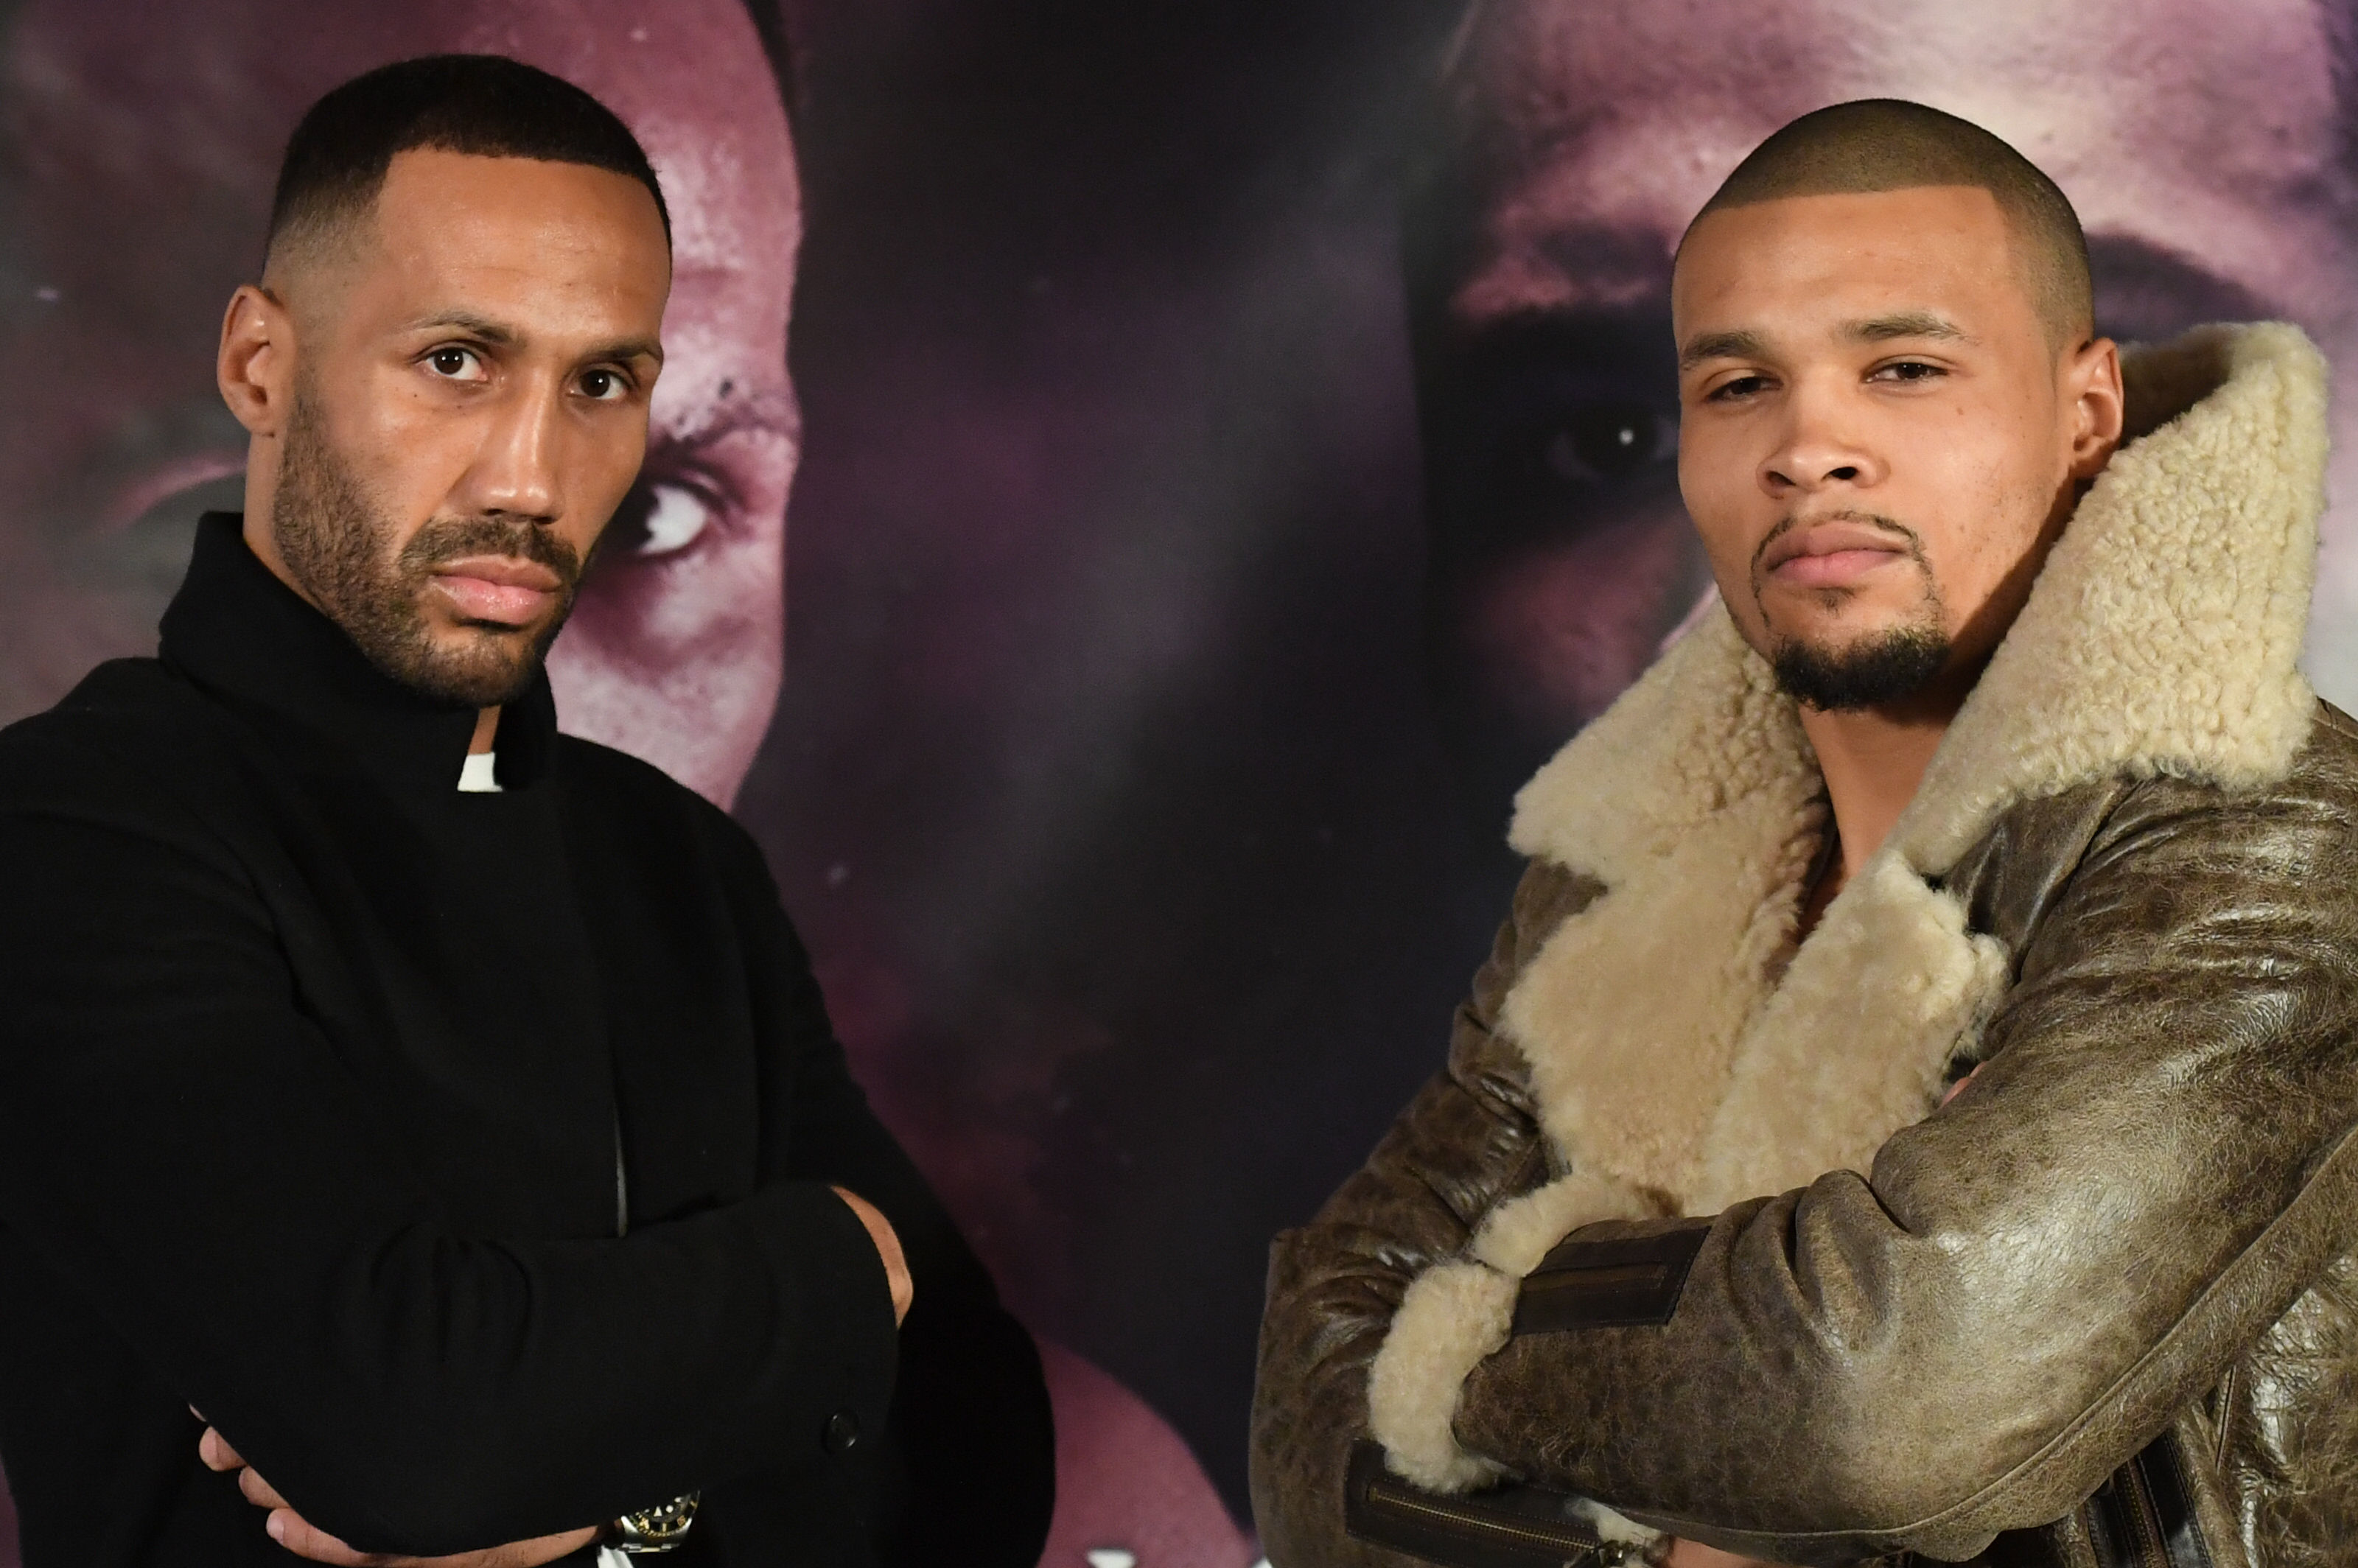 James DeGale and Chris Eubank meet at the O2 on Saturday night in a domestic grudge match